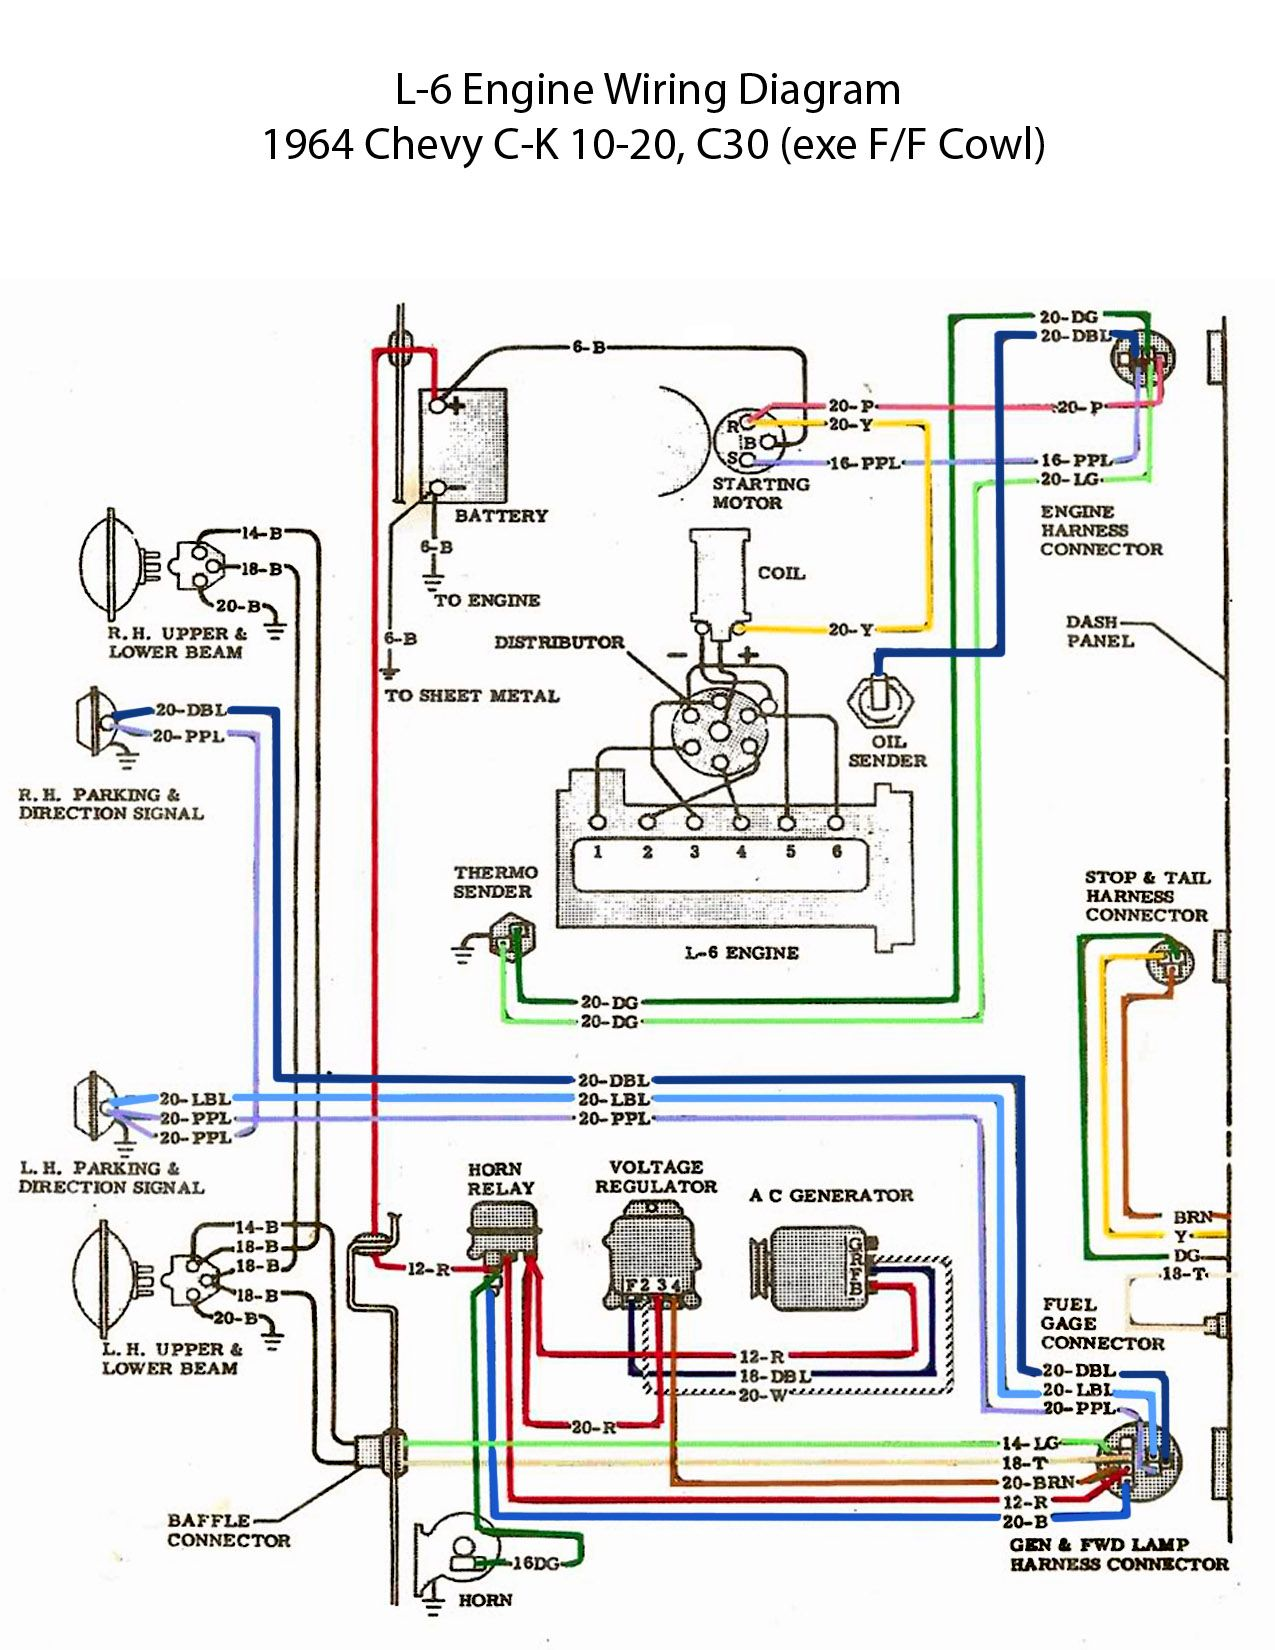 electric l 6 engine wiring diagram [ 1275 x 1650 Pixel ]